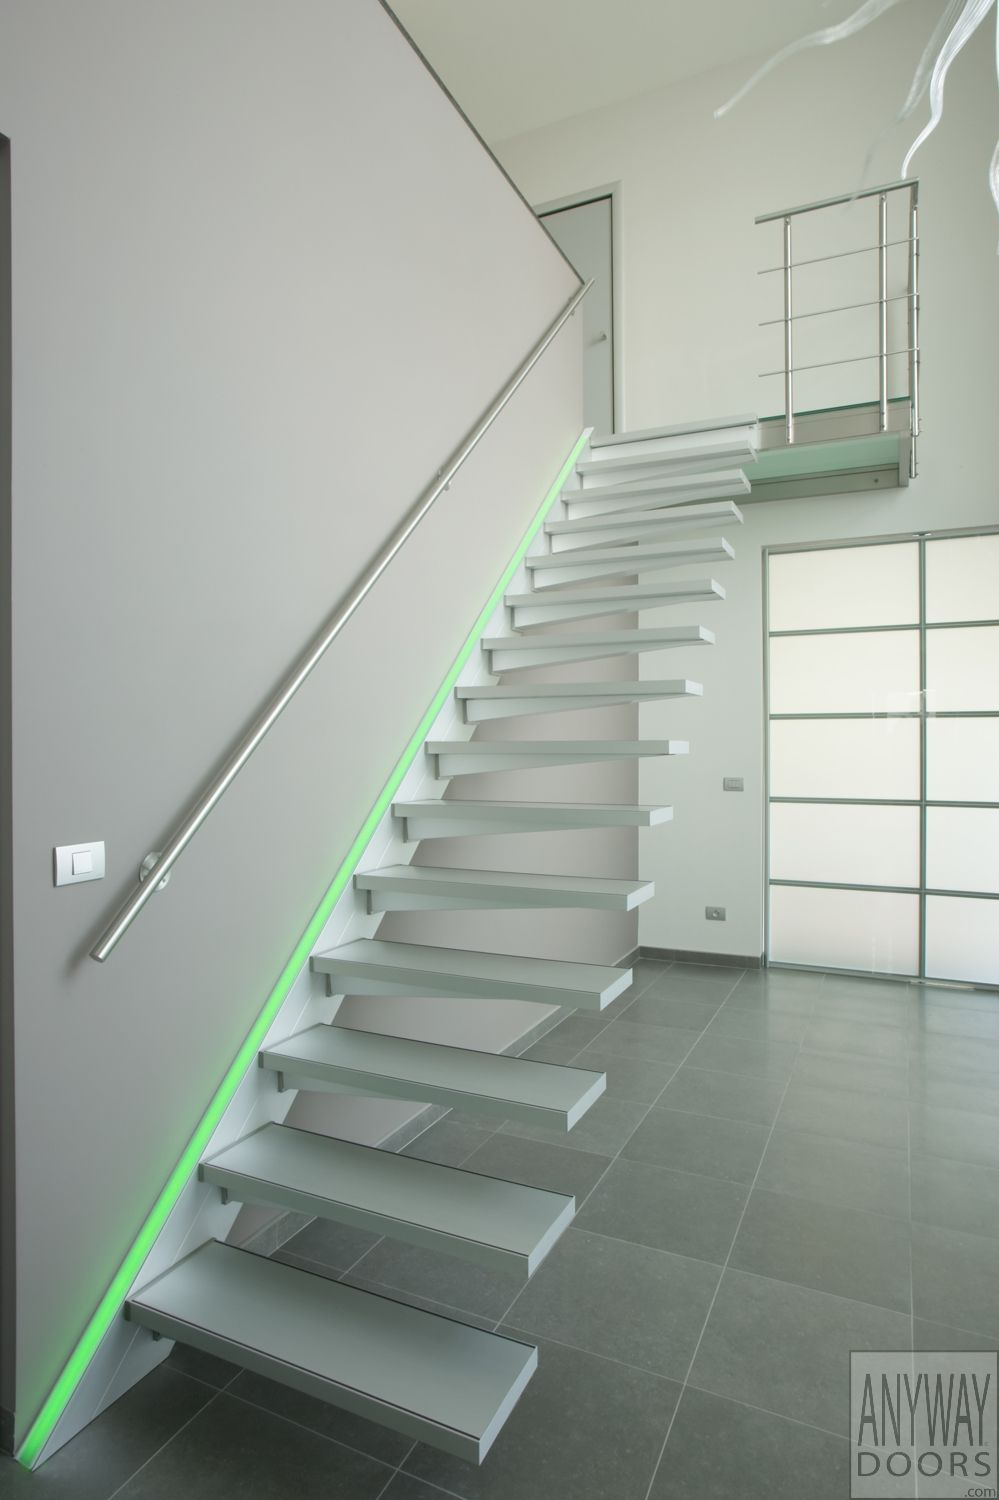 Zwevende trap in aluminium met rgb led verlichting led lighting ideas for staircases - Mezzanine verlichting ...